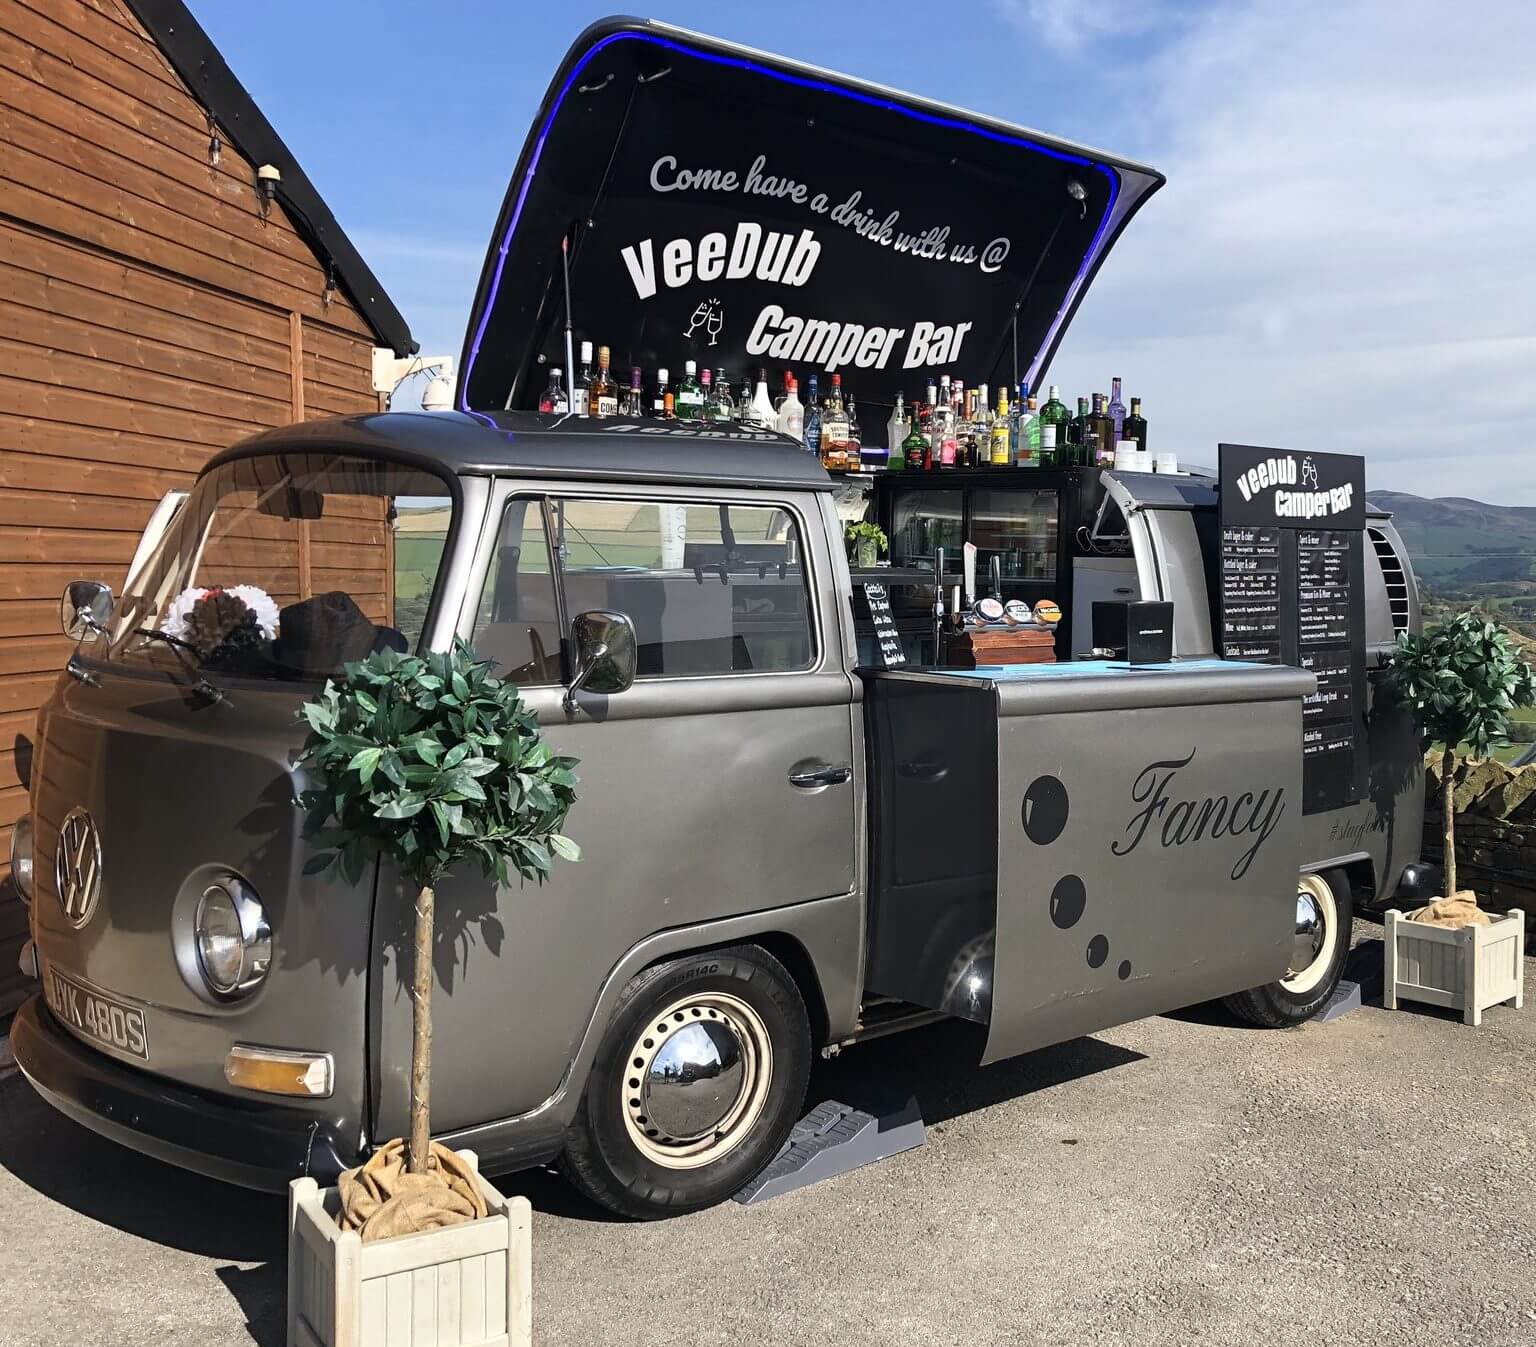 Mobile Bar Weddings Festival Tippee Private parties